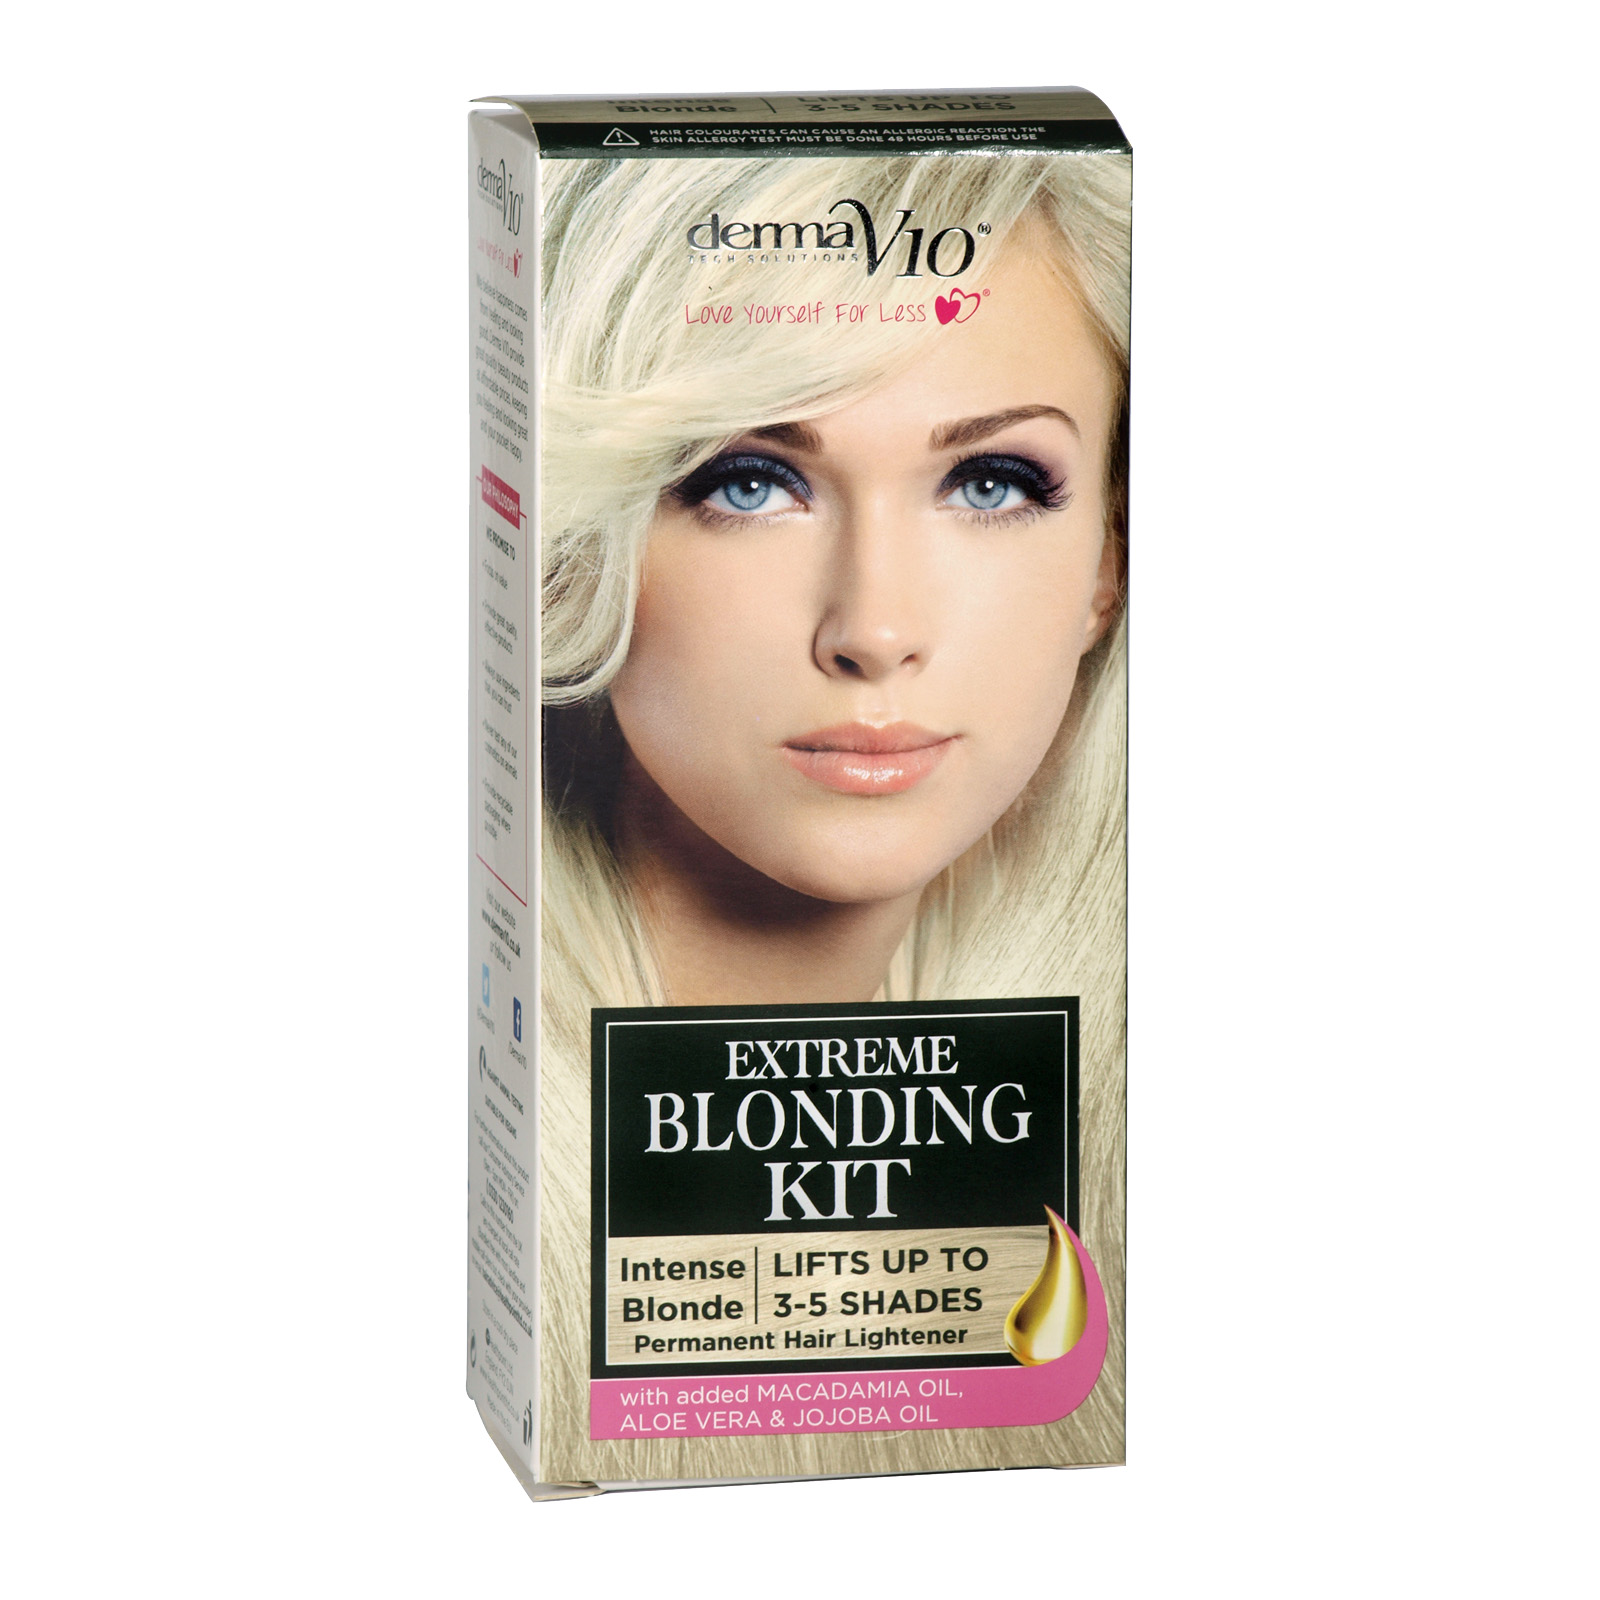 DERMA V10 EXTREME BLONDING KIT INTENSE BLONDE LIFTS 3-5 SHADES X6